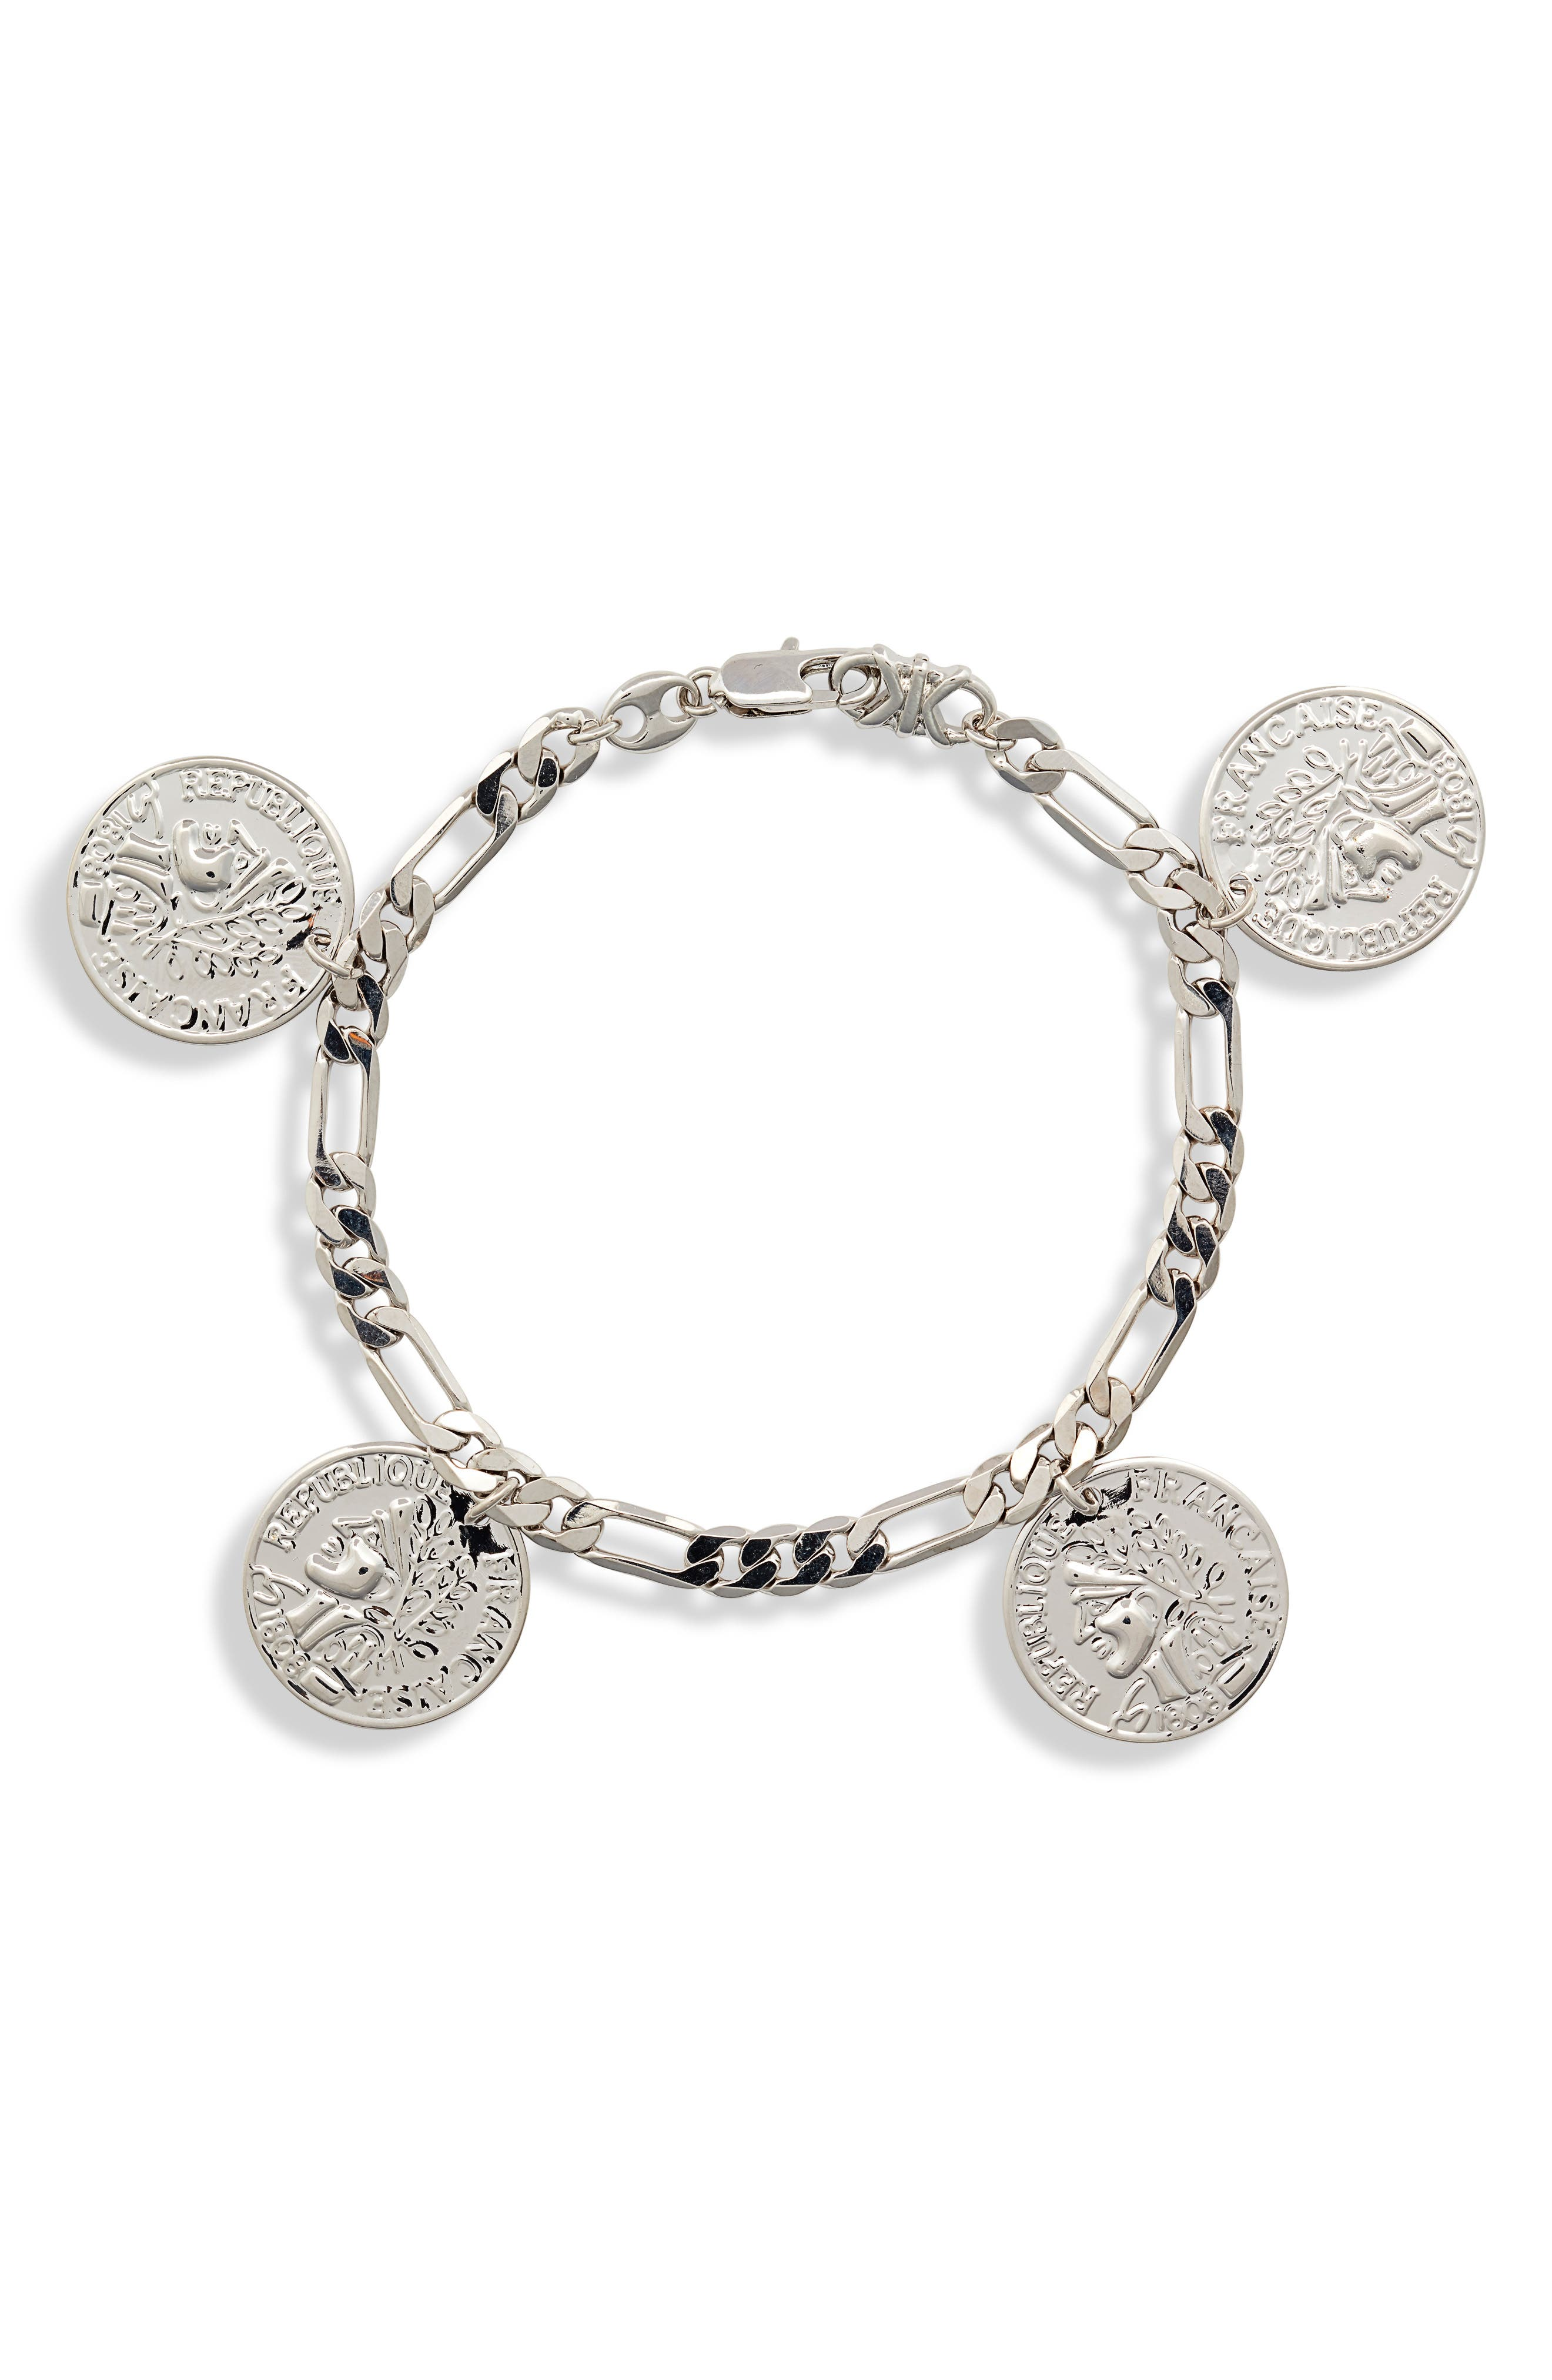 A gleaming addition to the coin-jewelry trend, this figaro chain bracelet jangles with a quartet of etched charms. Style Name: Sterling Forever Figaro Charm Bracelet. Style Number: 5953203. Available in stores.